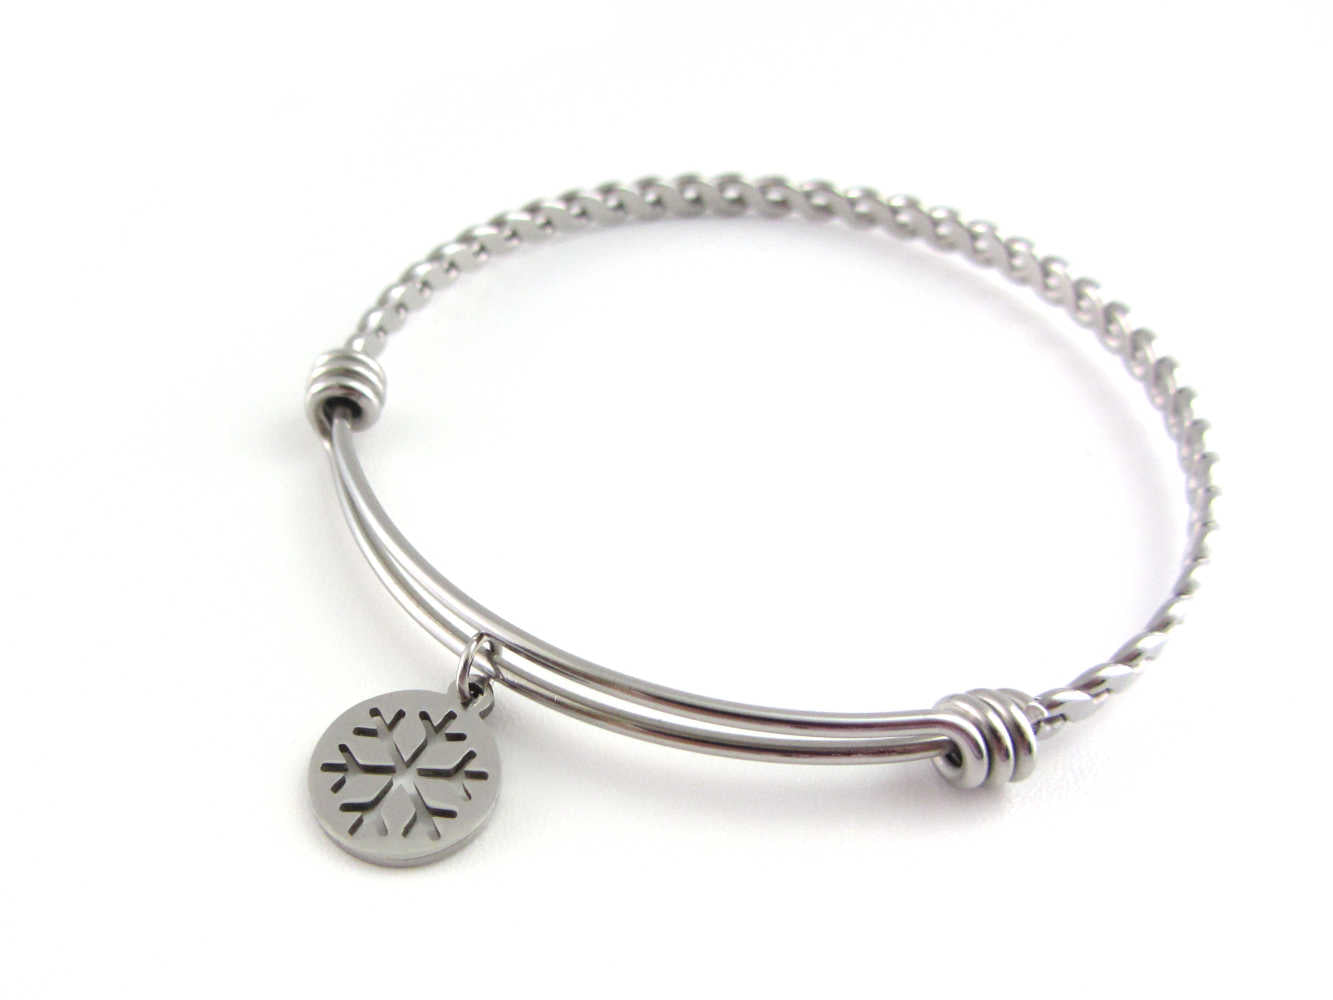 stainless steel snowflake charm on a bangle with braided twist pattern